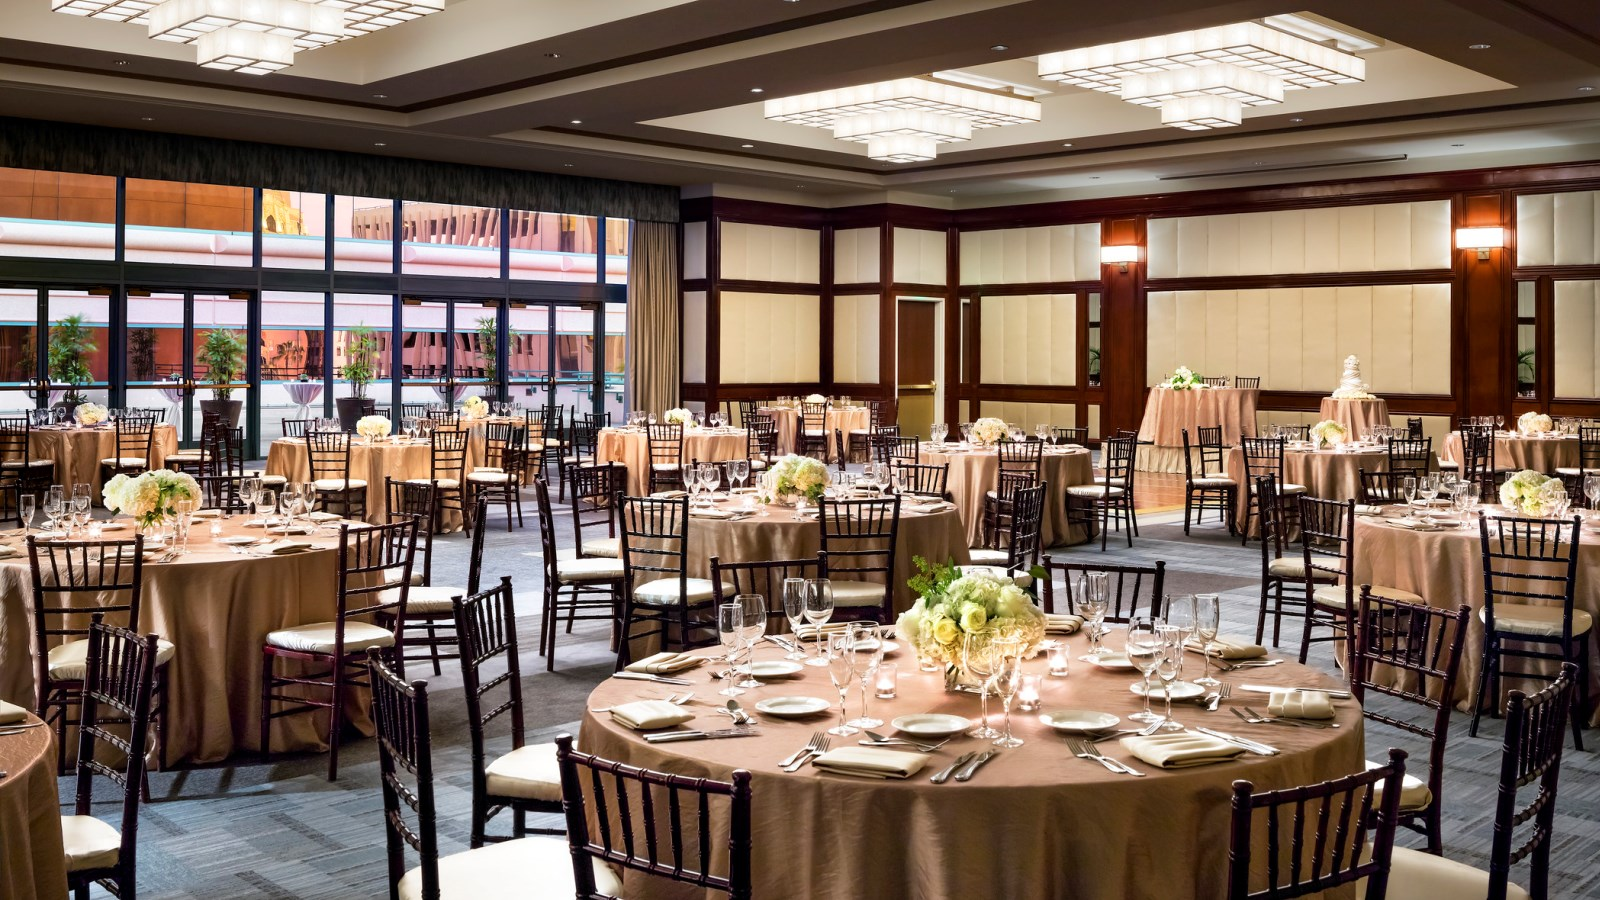 Long Beach Meeting Space - Centennial Ballroom Reception